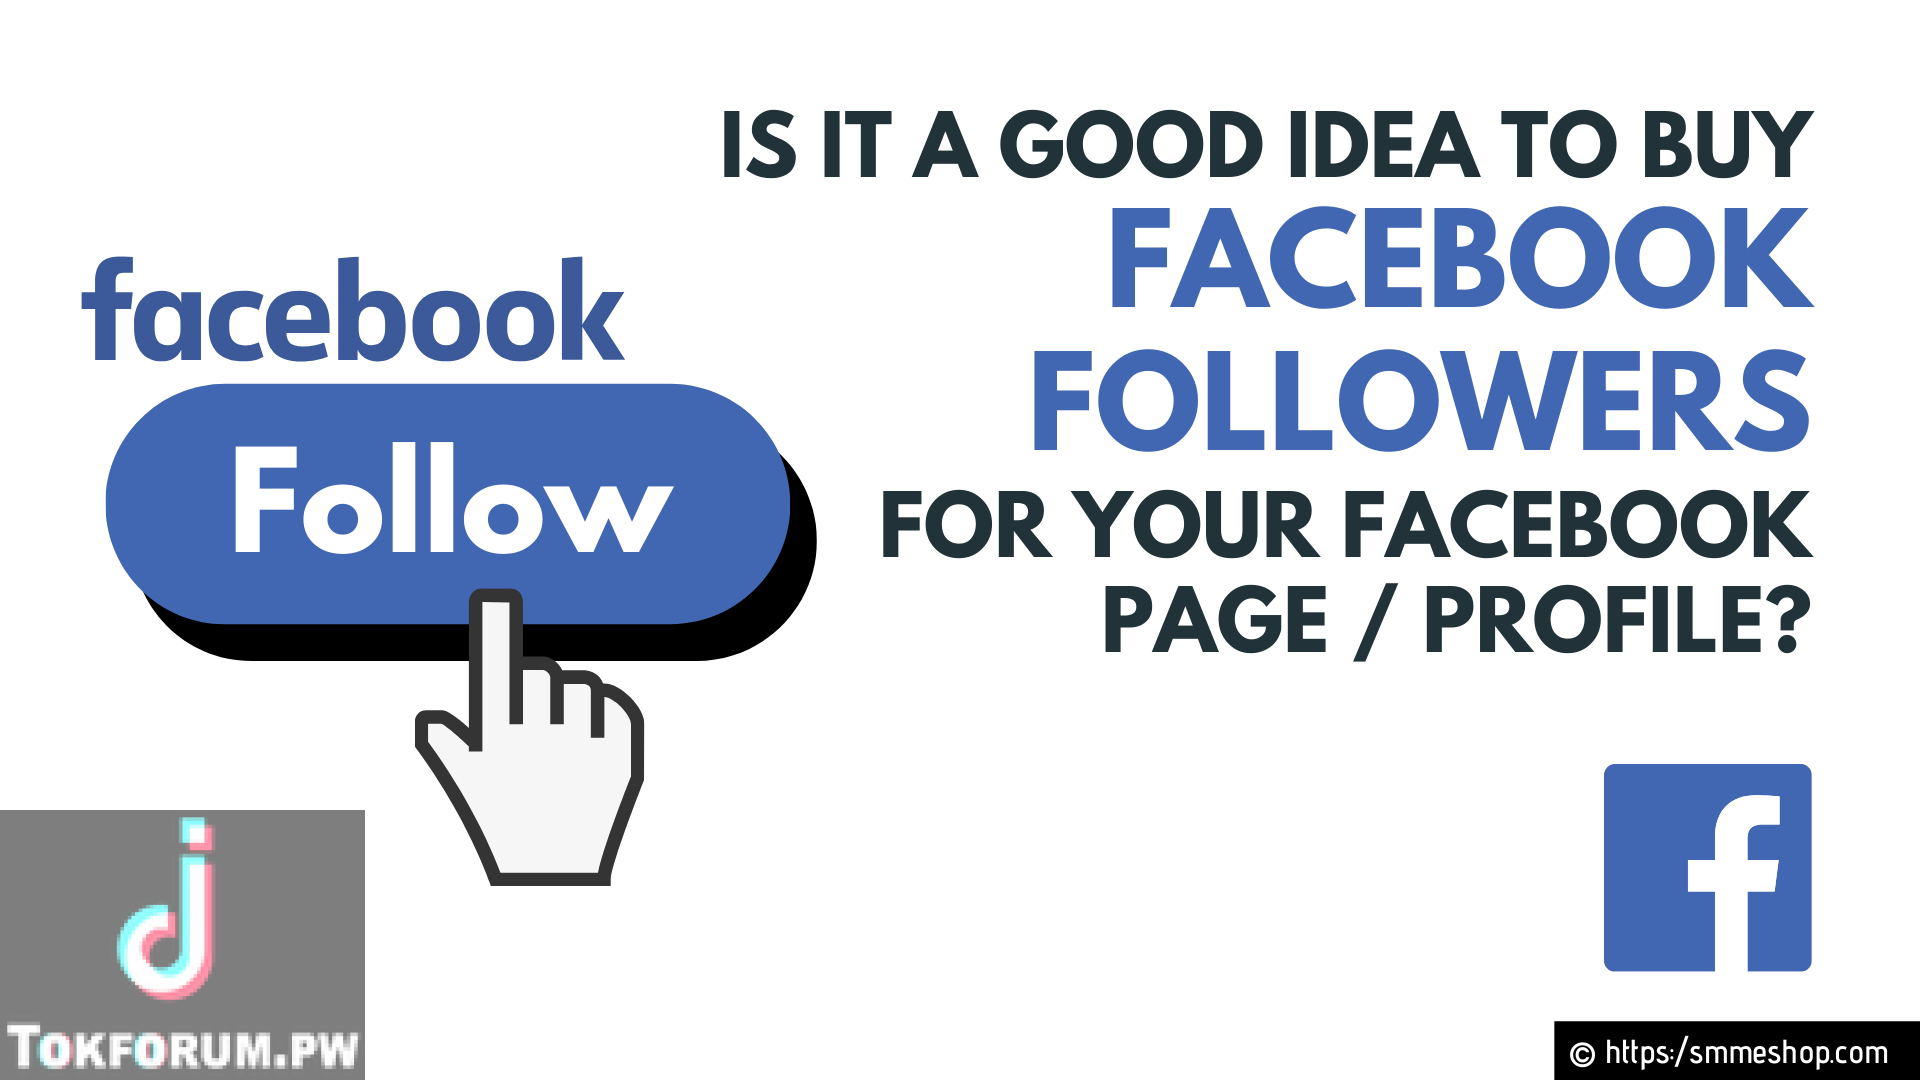 is-it-a-good-idea-to-buy-facebook-followers-for-your-facebook-page-profile_h1587744048-png.922